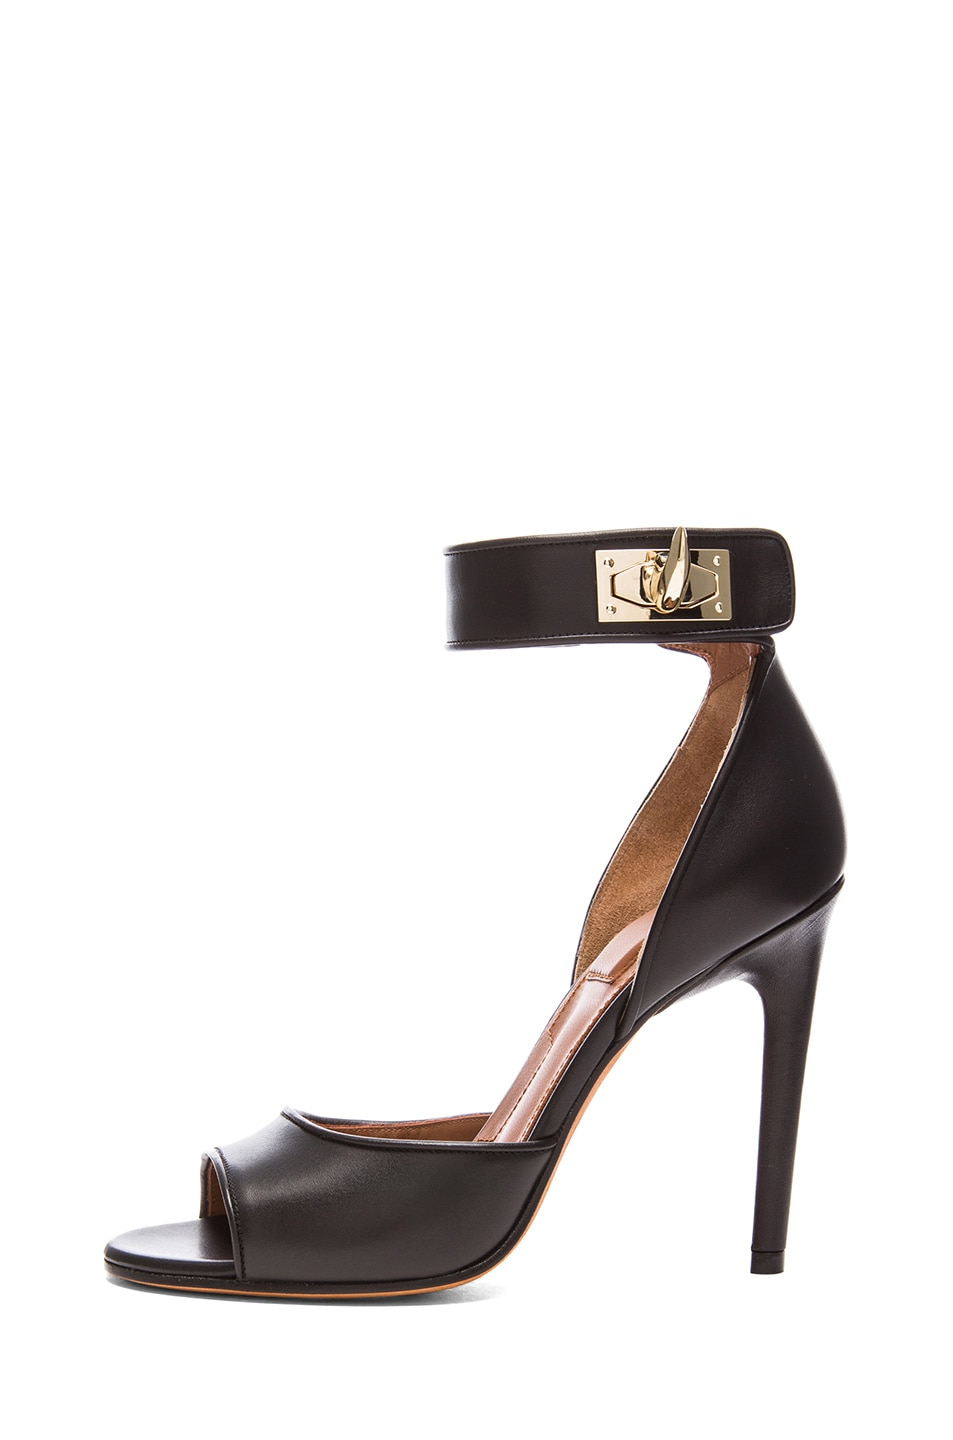 Image 1 of GIVENCHY Shark Lock Calfskin Leather Heels in Black